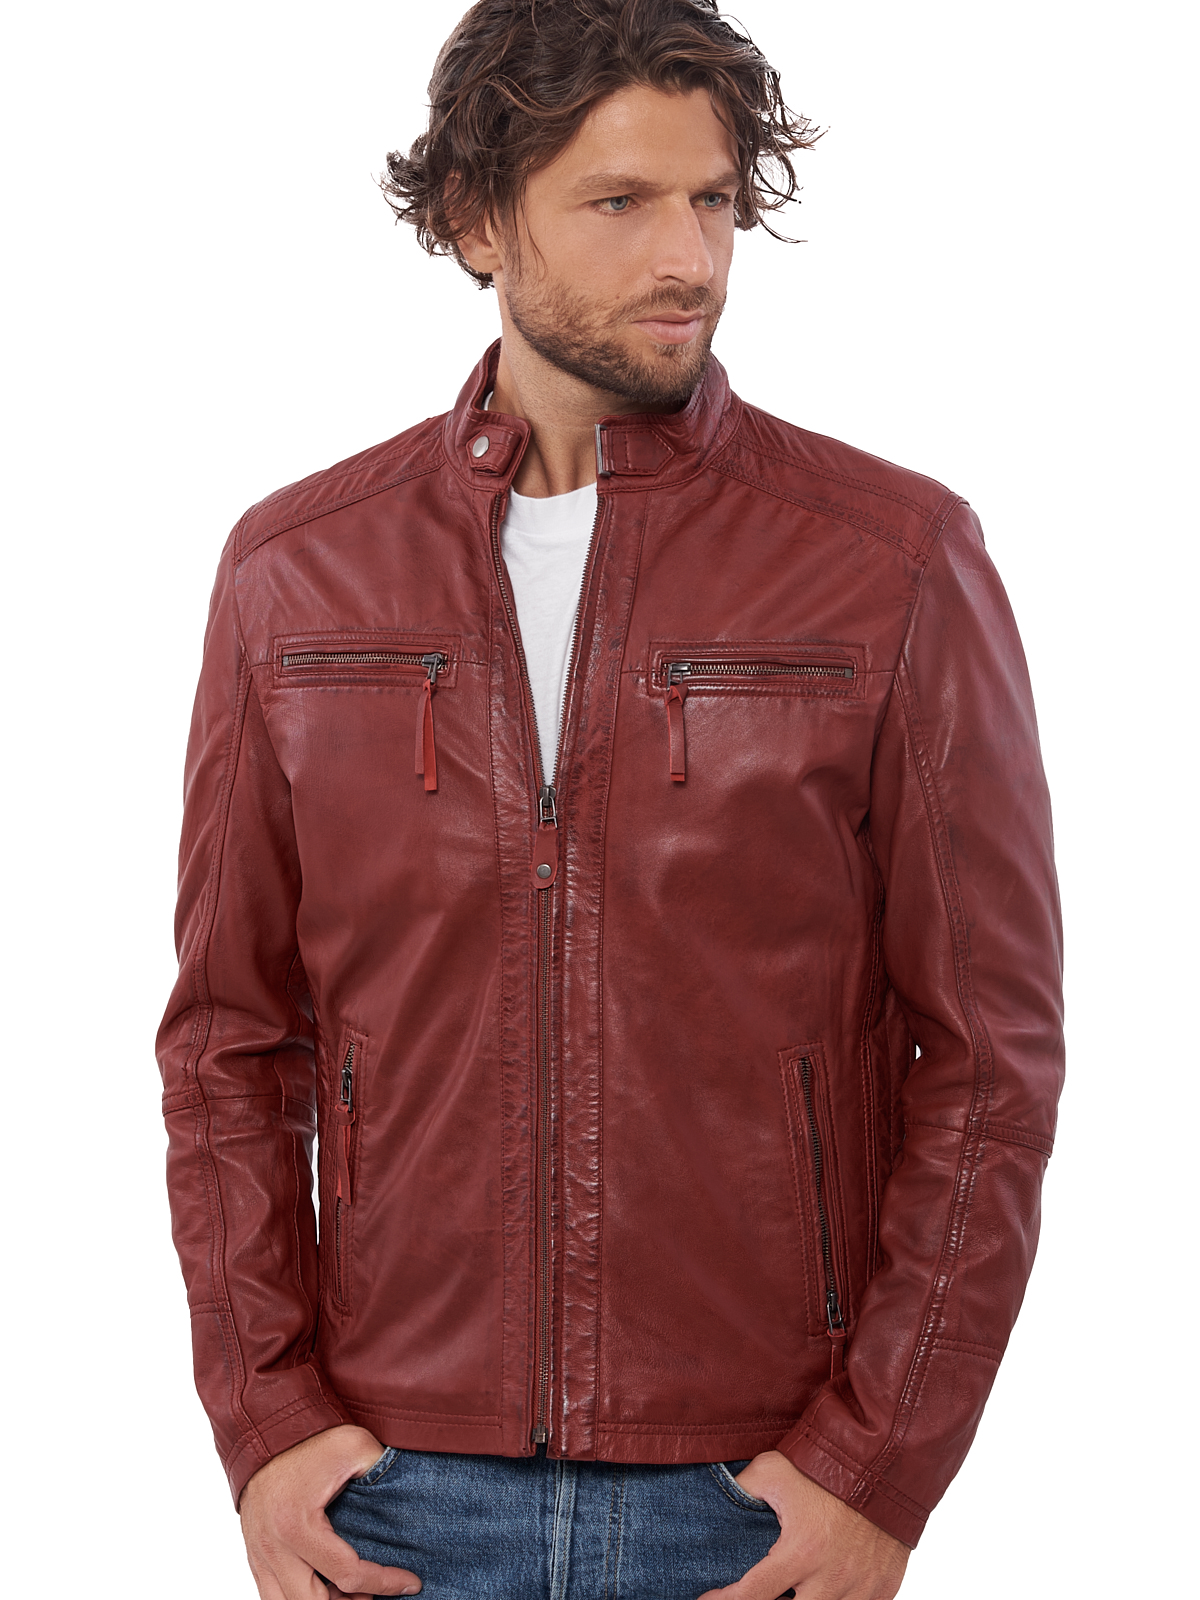 H98588f07075246d79827c9d2285177b69 VAINAS European Brand Mens Genuine Leather jacket for men Winter Real sheep leather jacket Motorcycle jackets Biker jackets Alfa